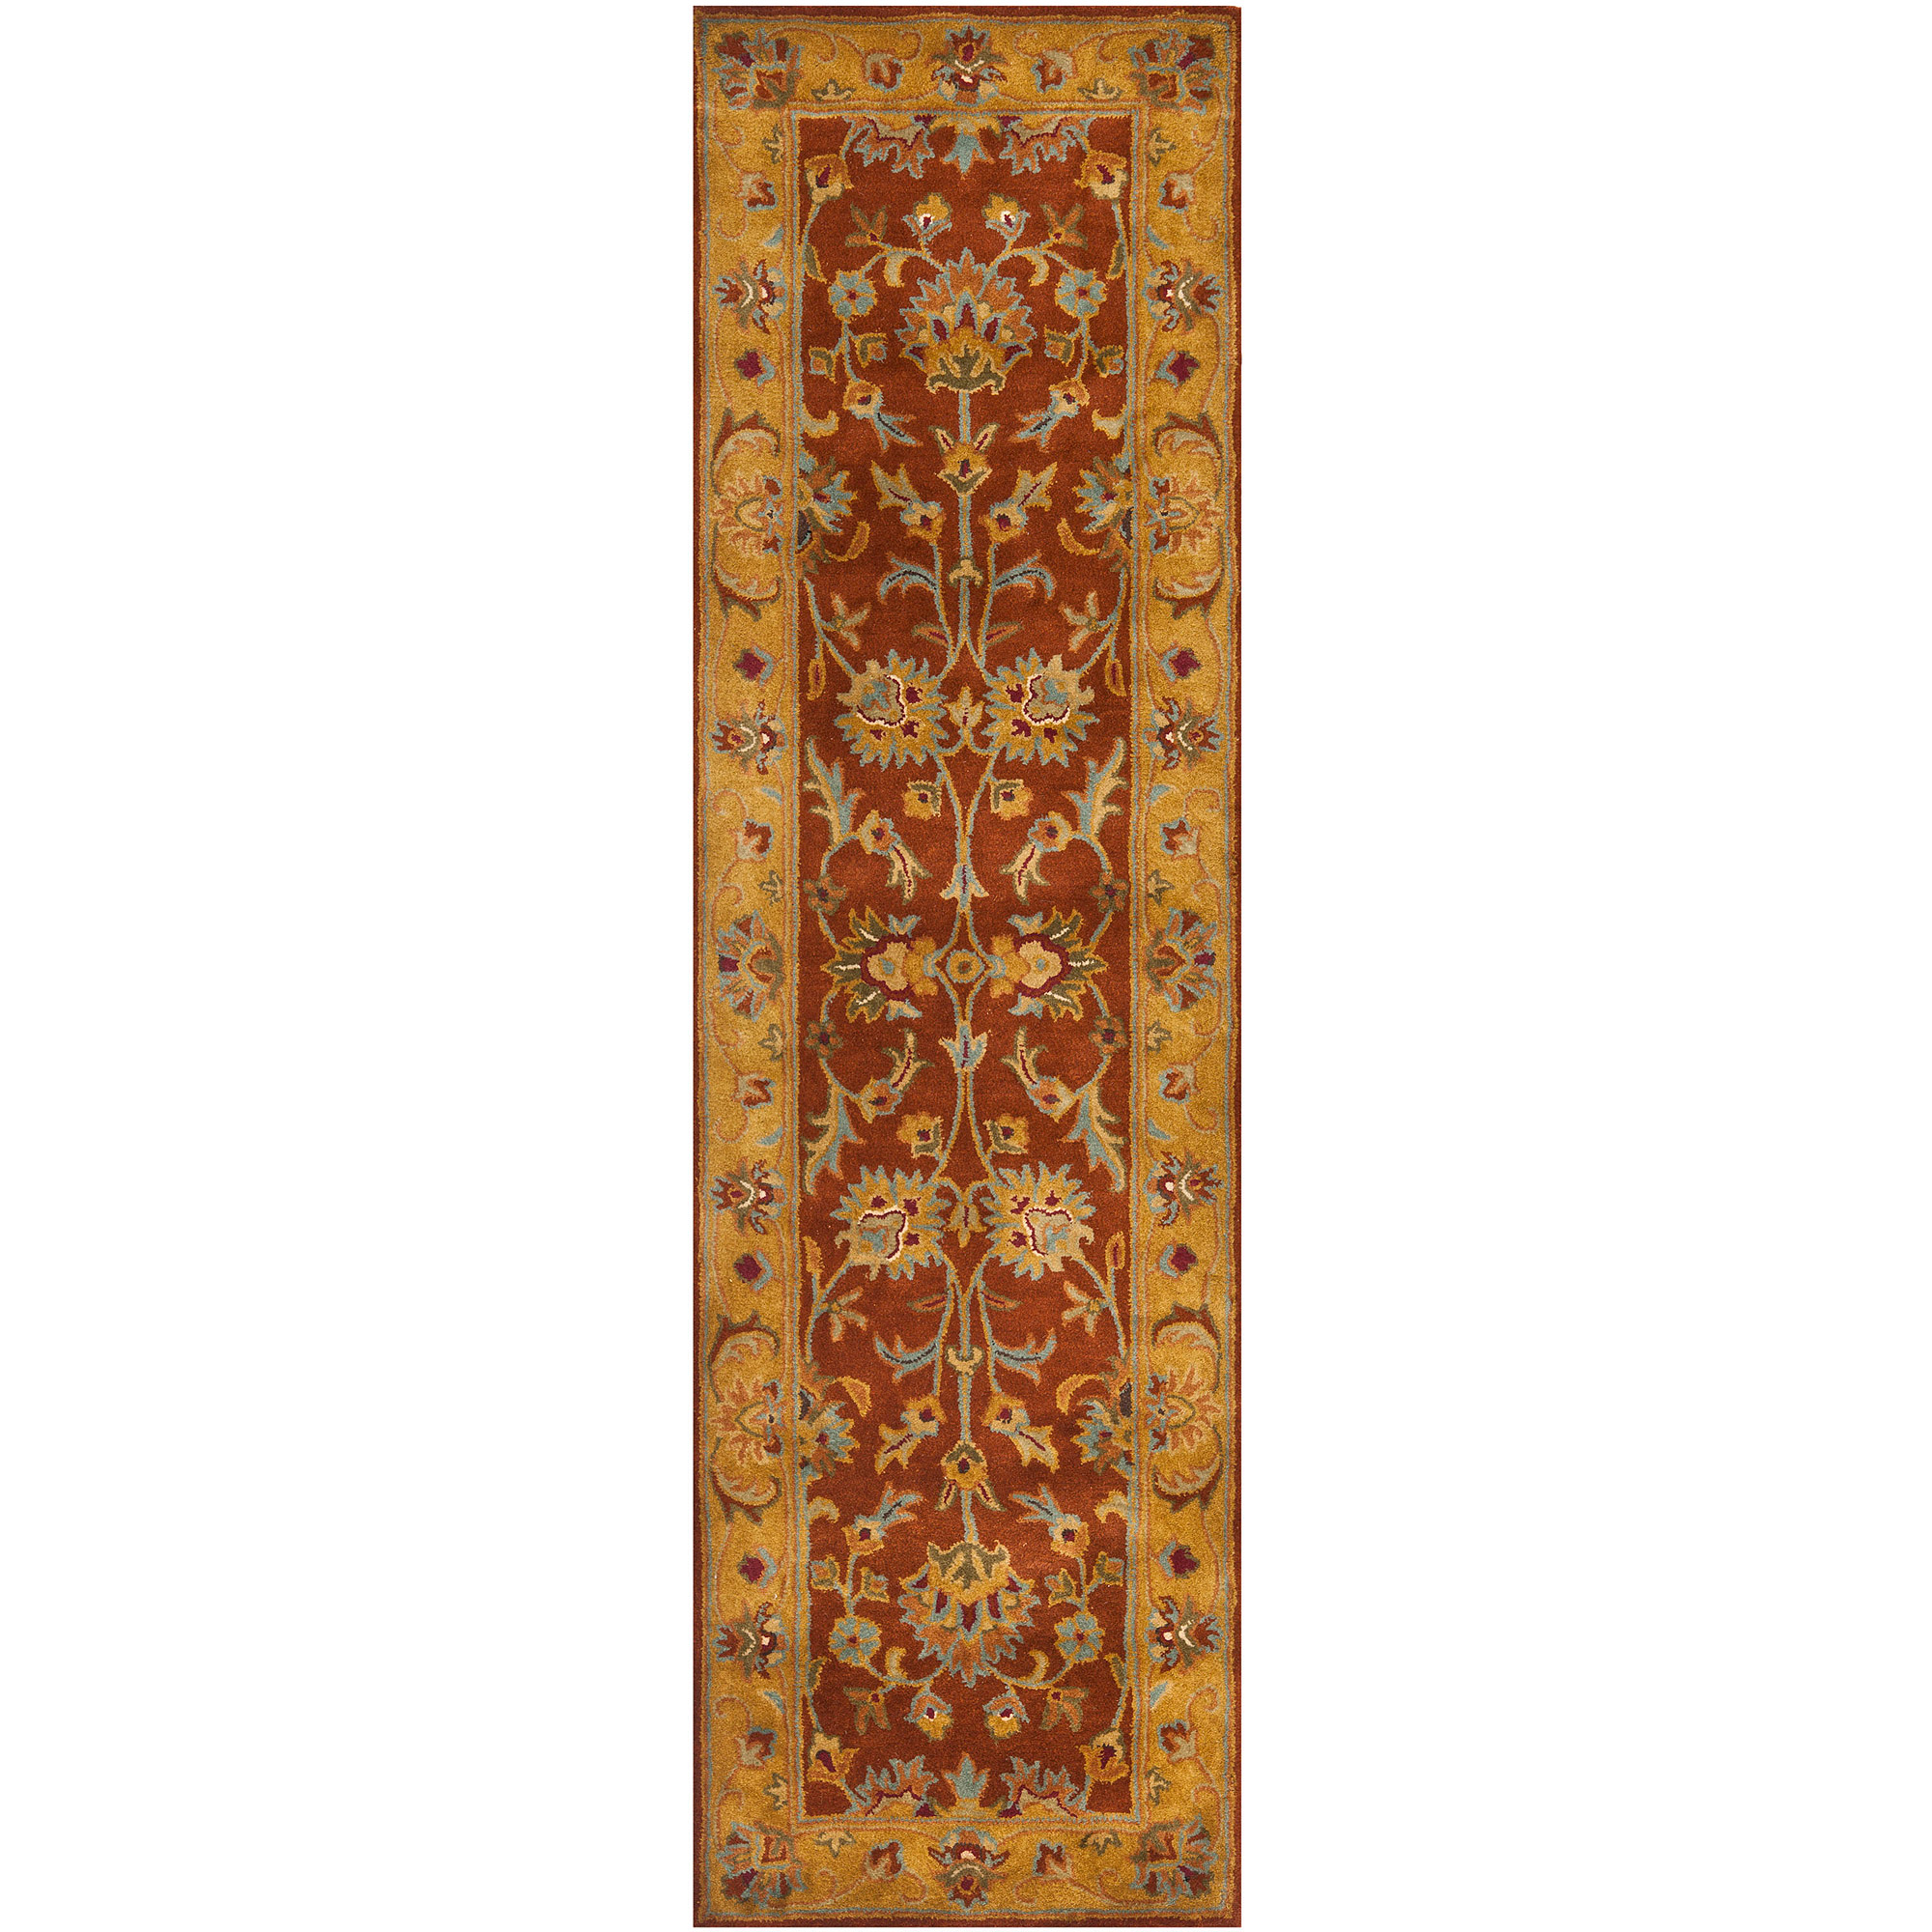 Safavieh Heritage Seymour Hand-Tufted Wool Runner Rug, Red/Natural